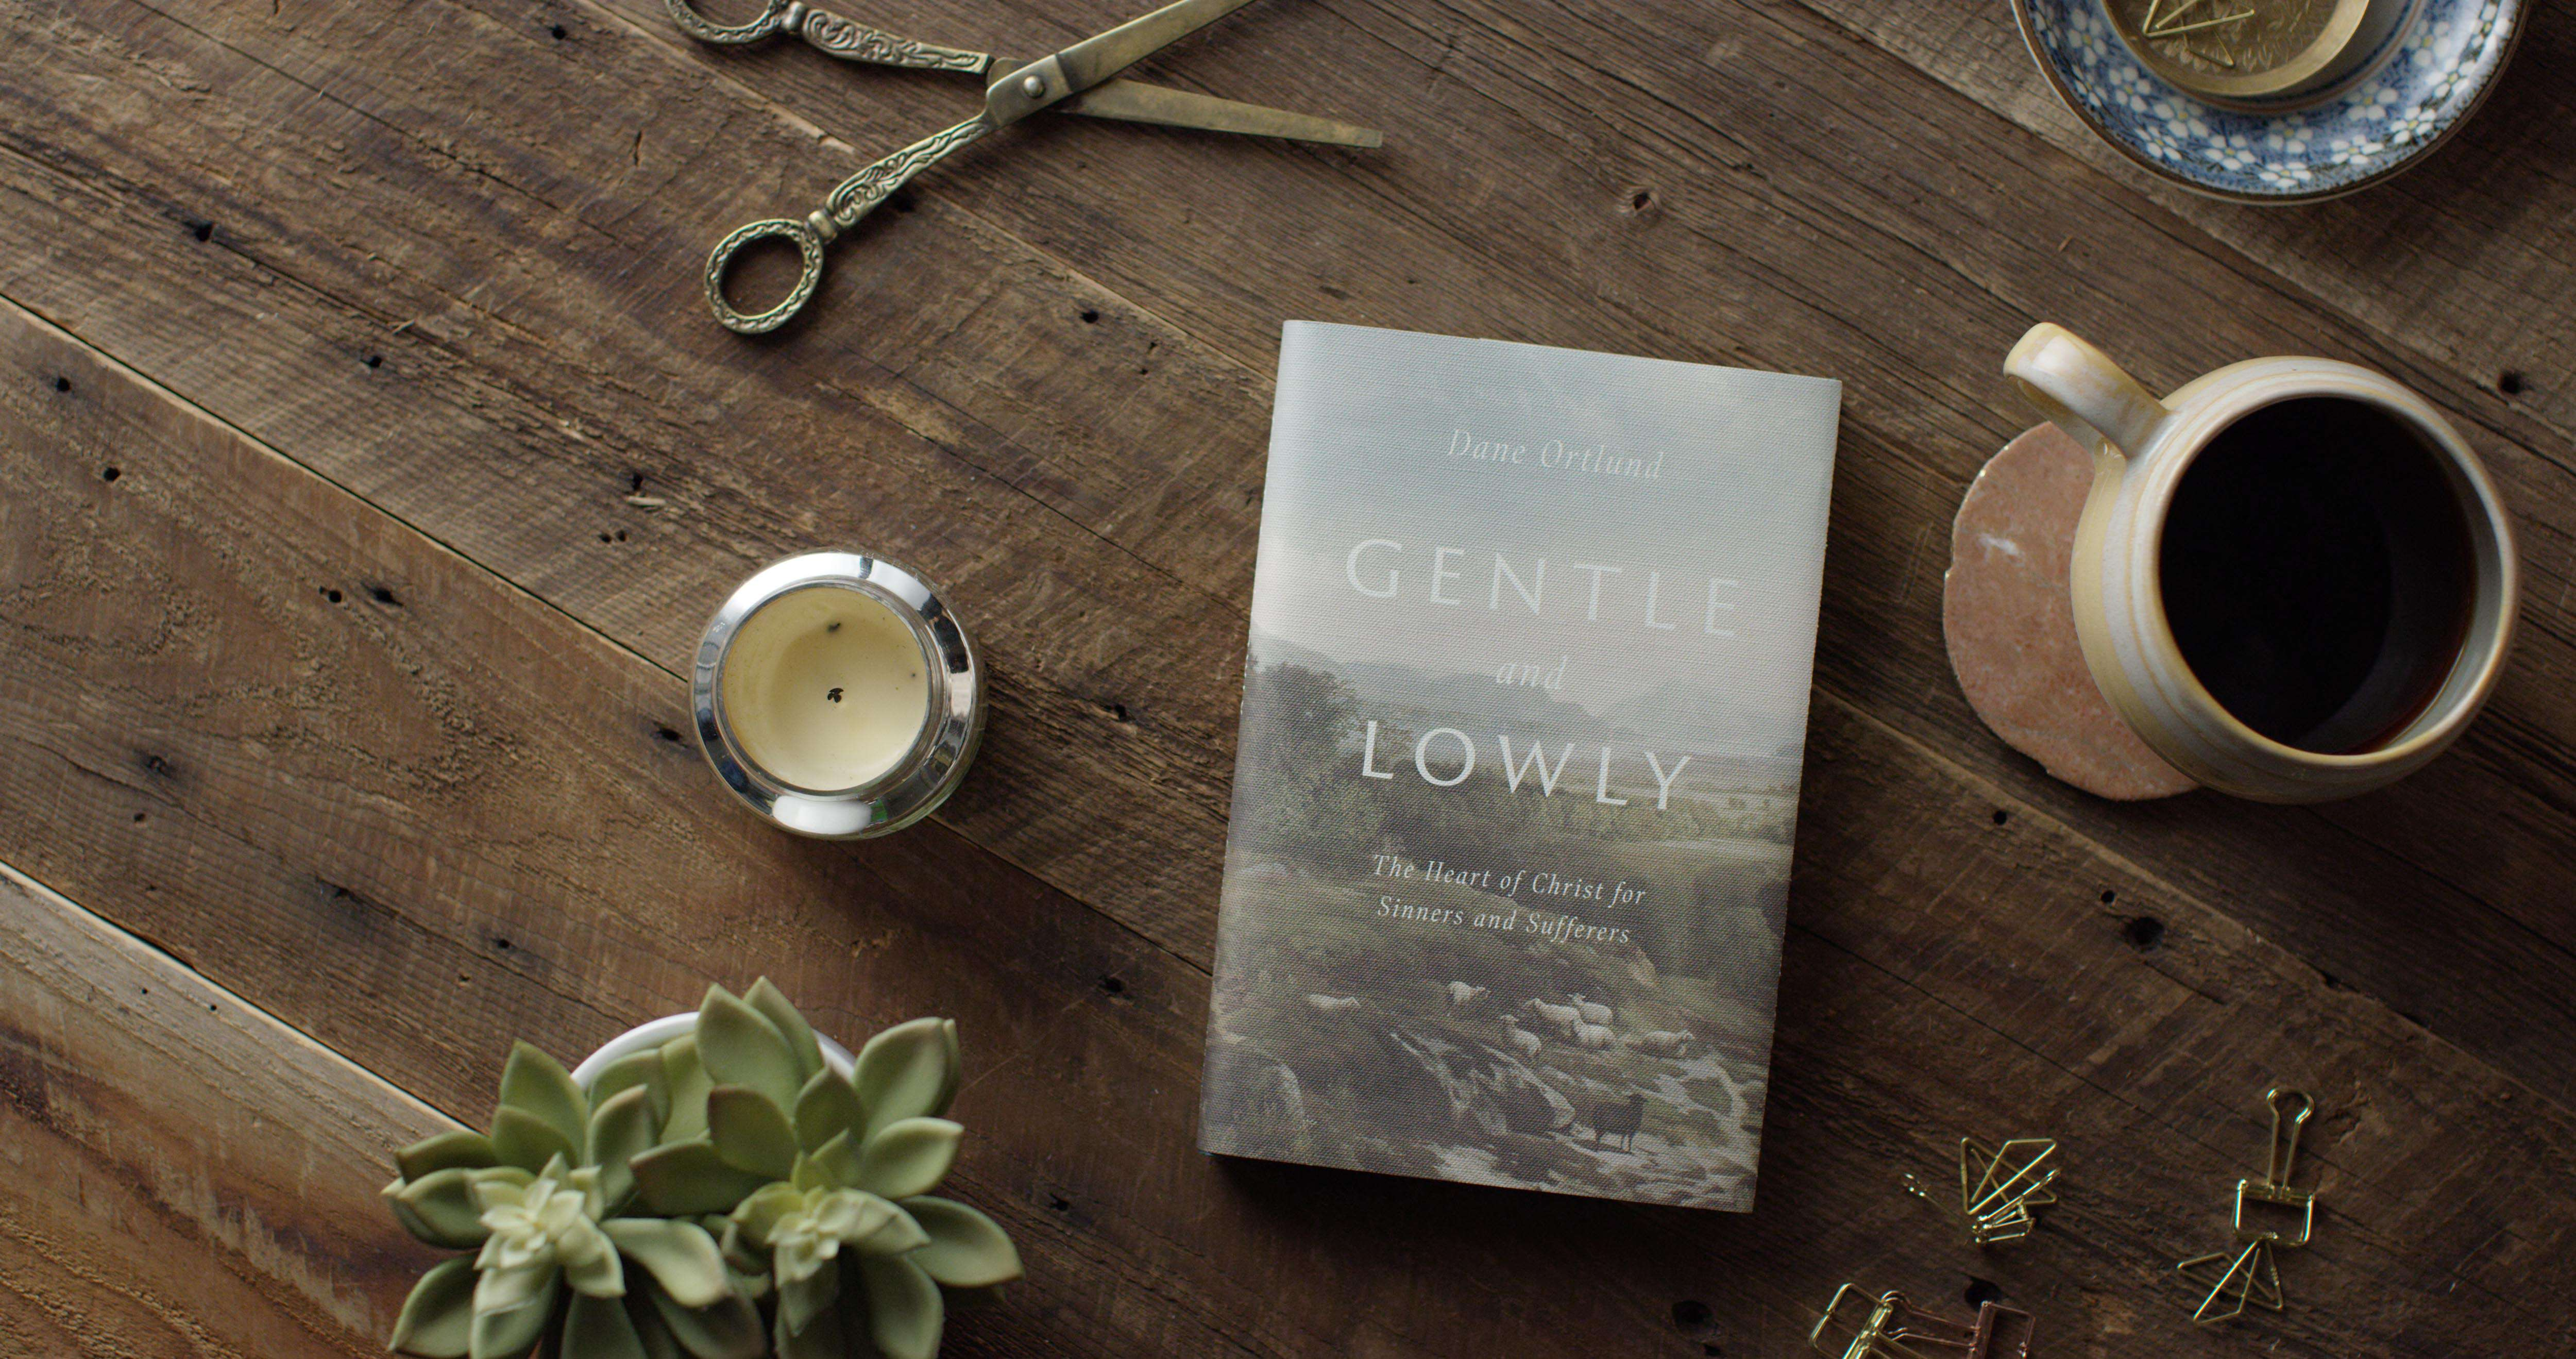 Gentle and Lowly Book by Dane Ortlund